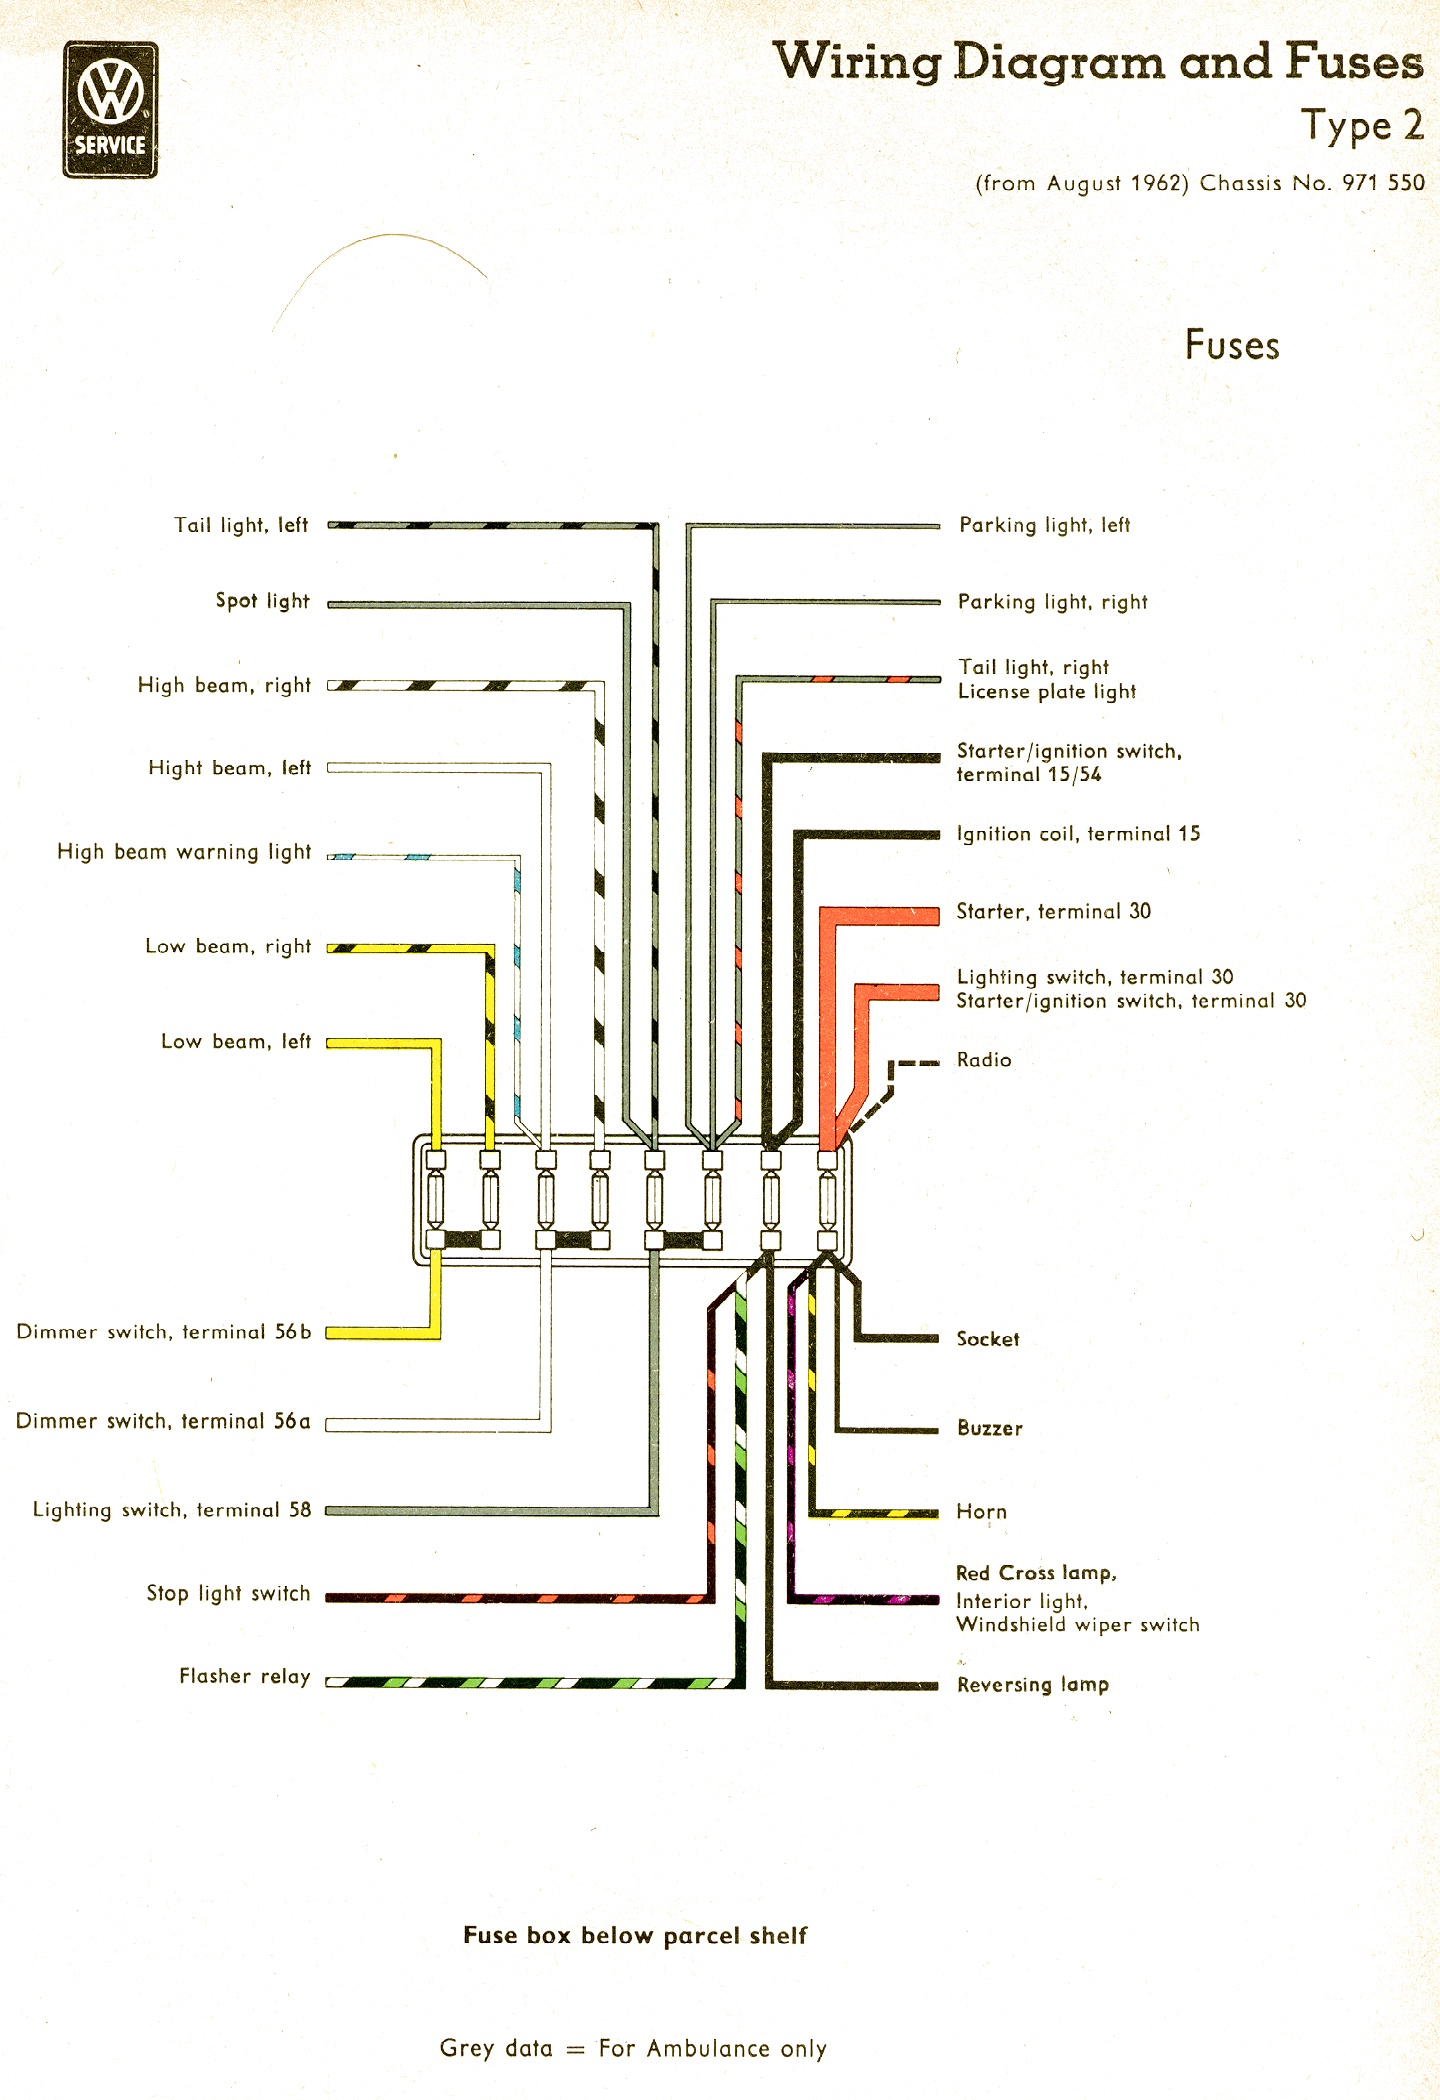 1967 vw beetle wiring harness diagram Images Gallery